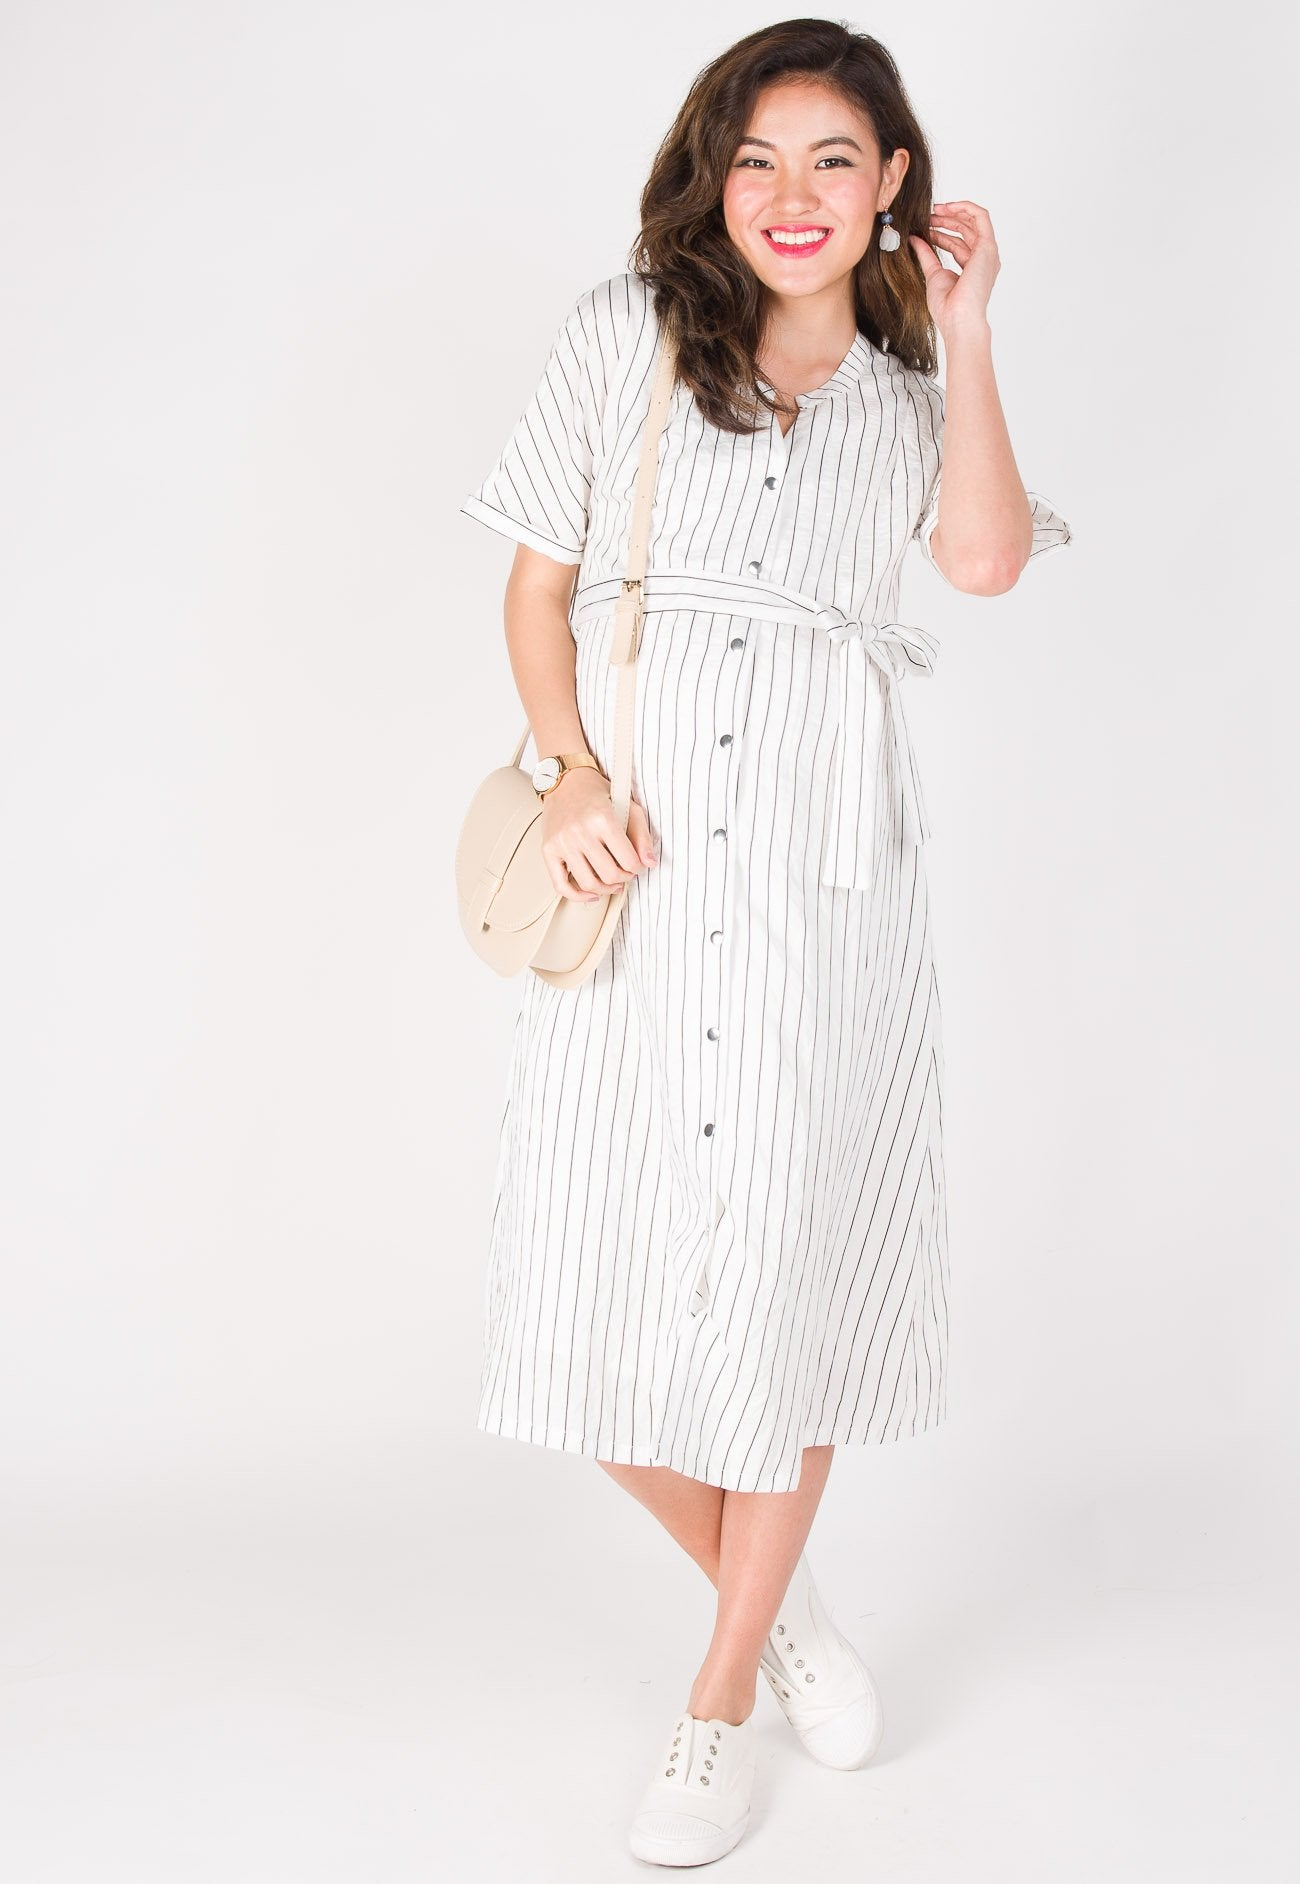 Lilith Striped Nursing Dress in White  by JumpEatCry - Maternity and nursing wear